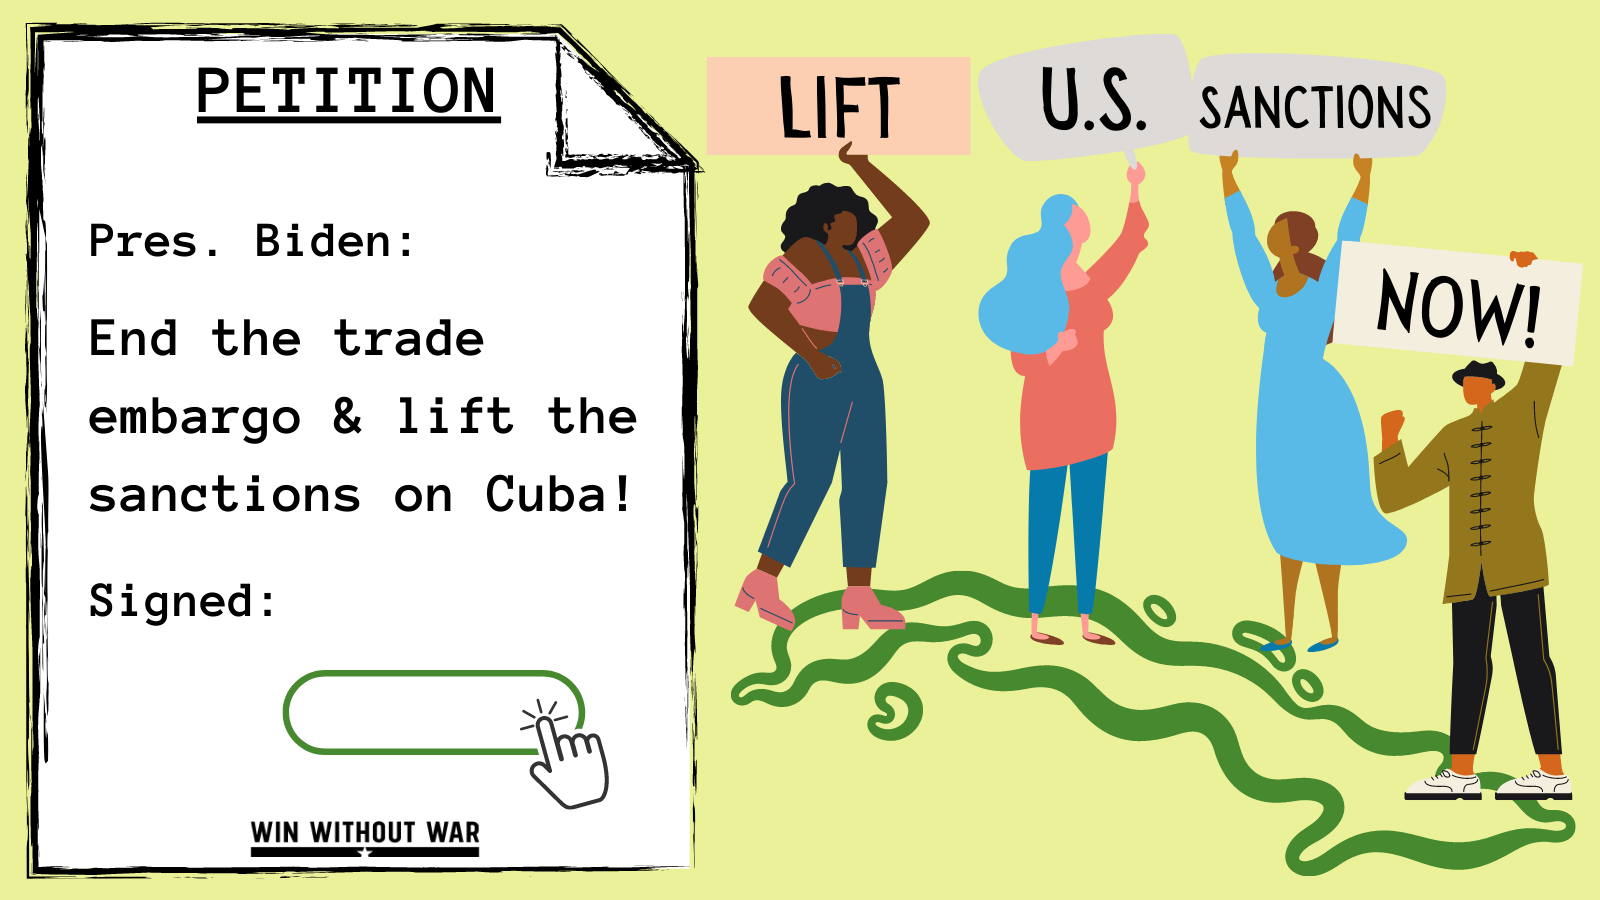 President Biden: End the sanctions and lift the trade embargo on Cuba!